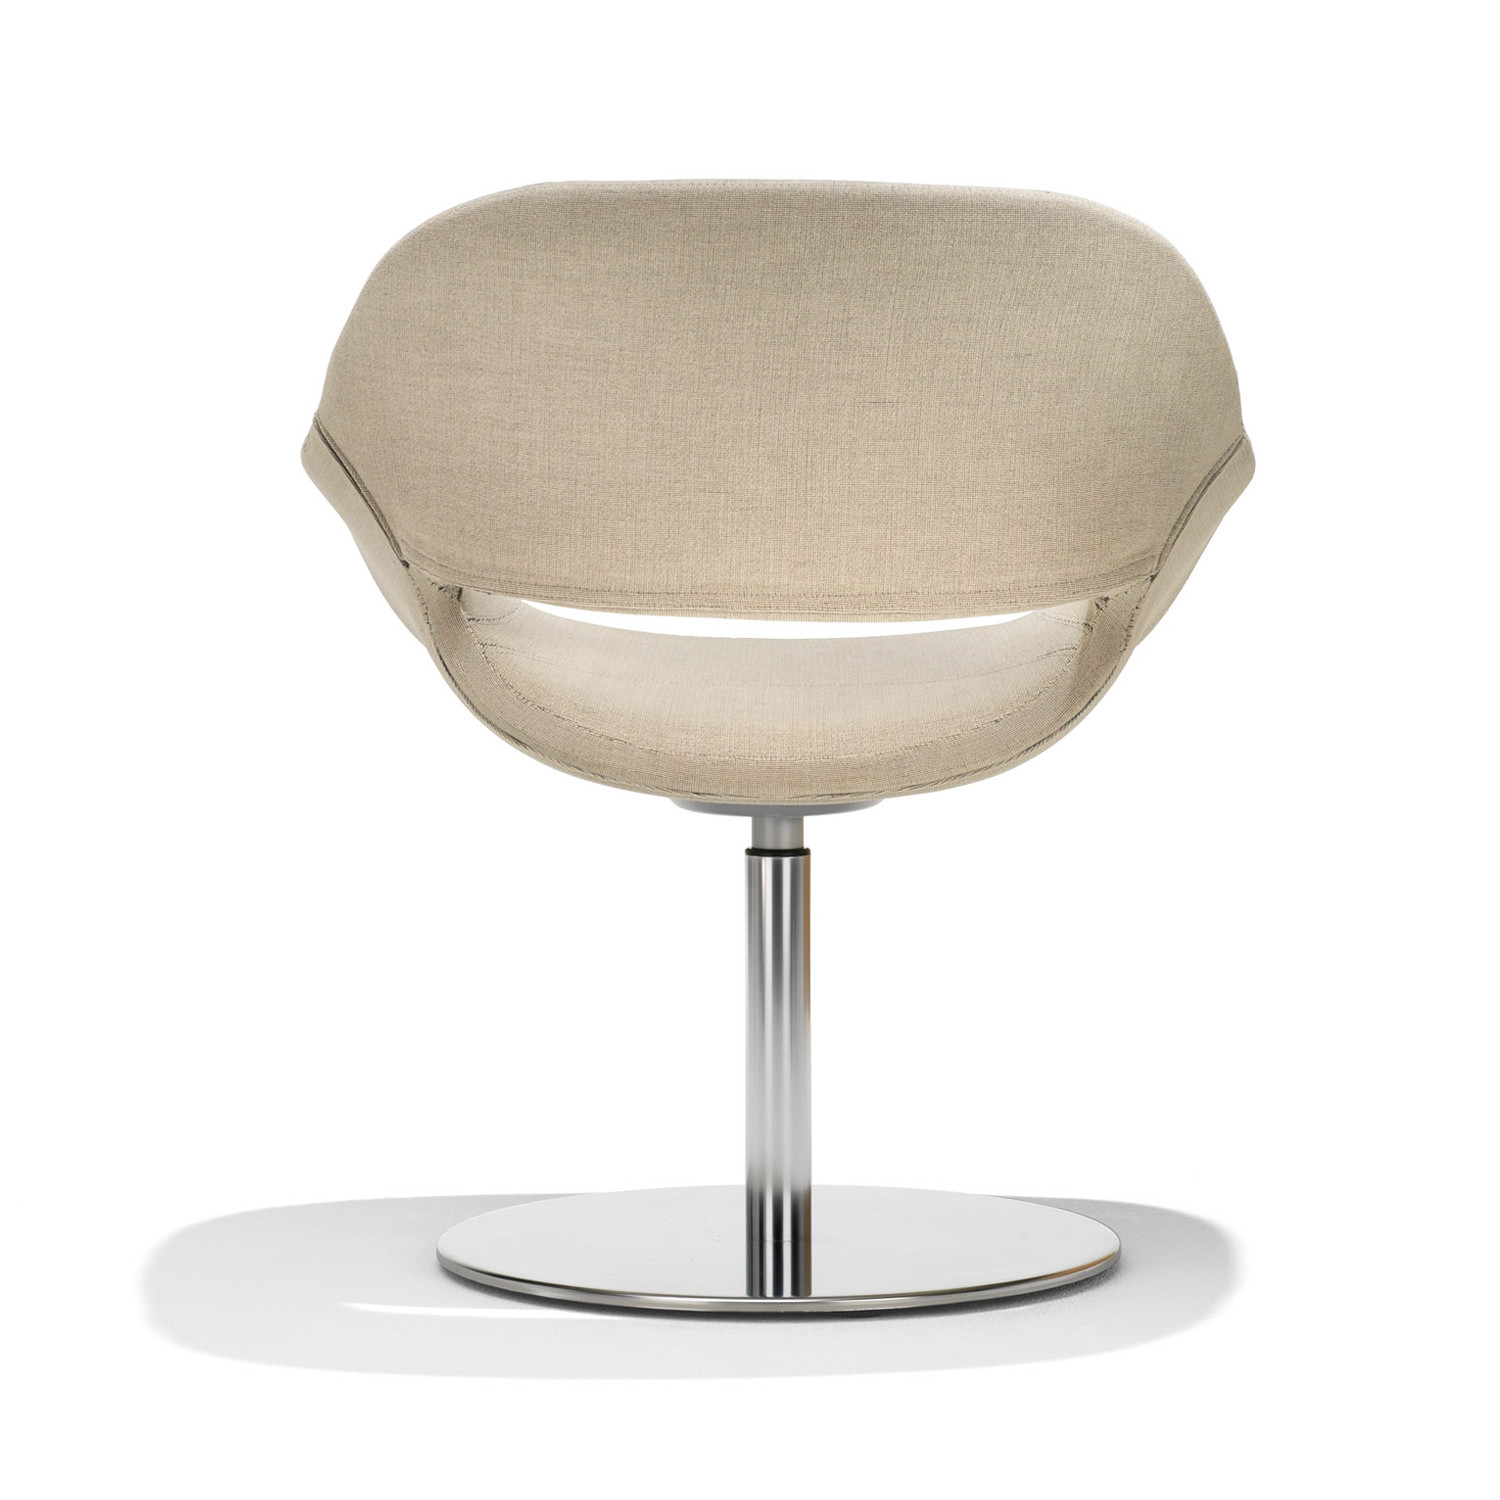 8200 Volpe Armchair back detail